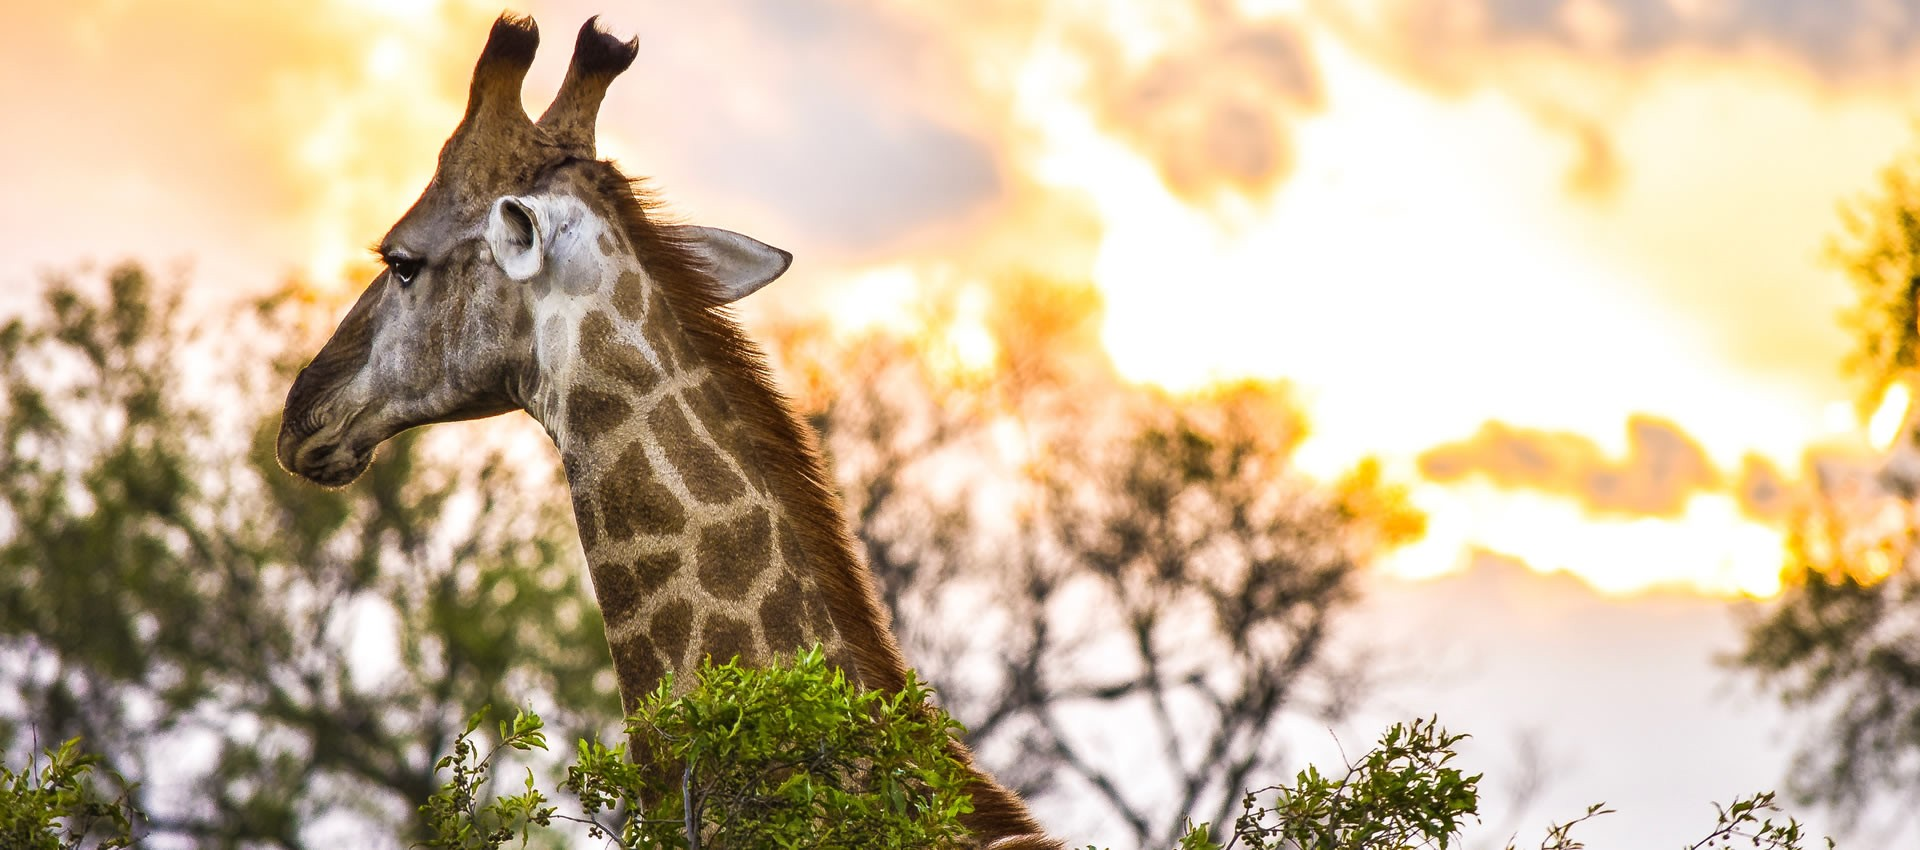 south africa safari tours, 14 Days Comprehensive Safari